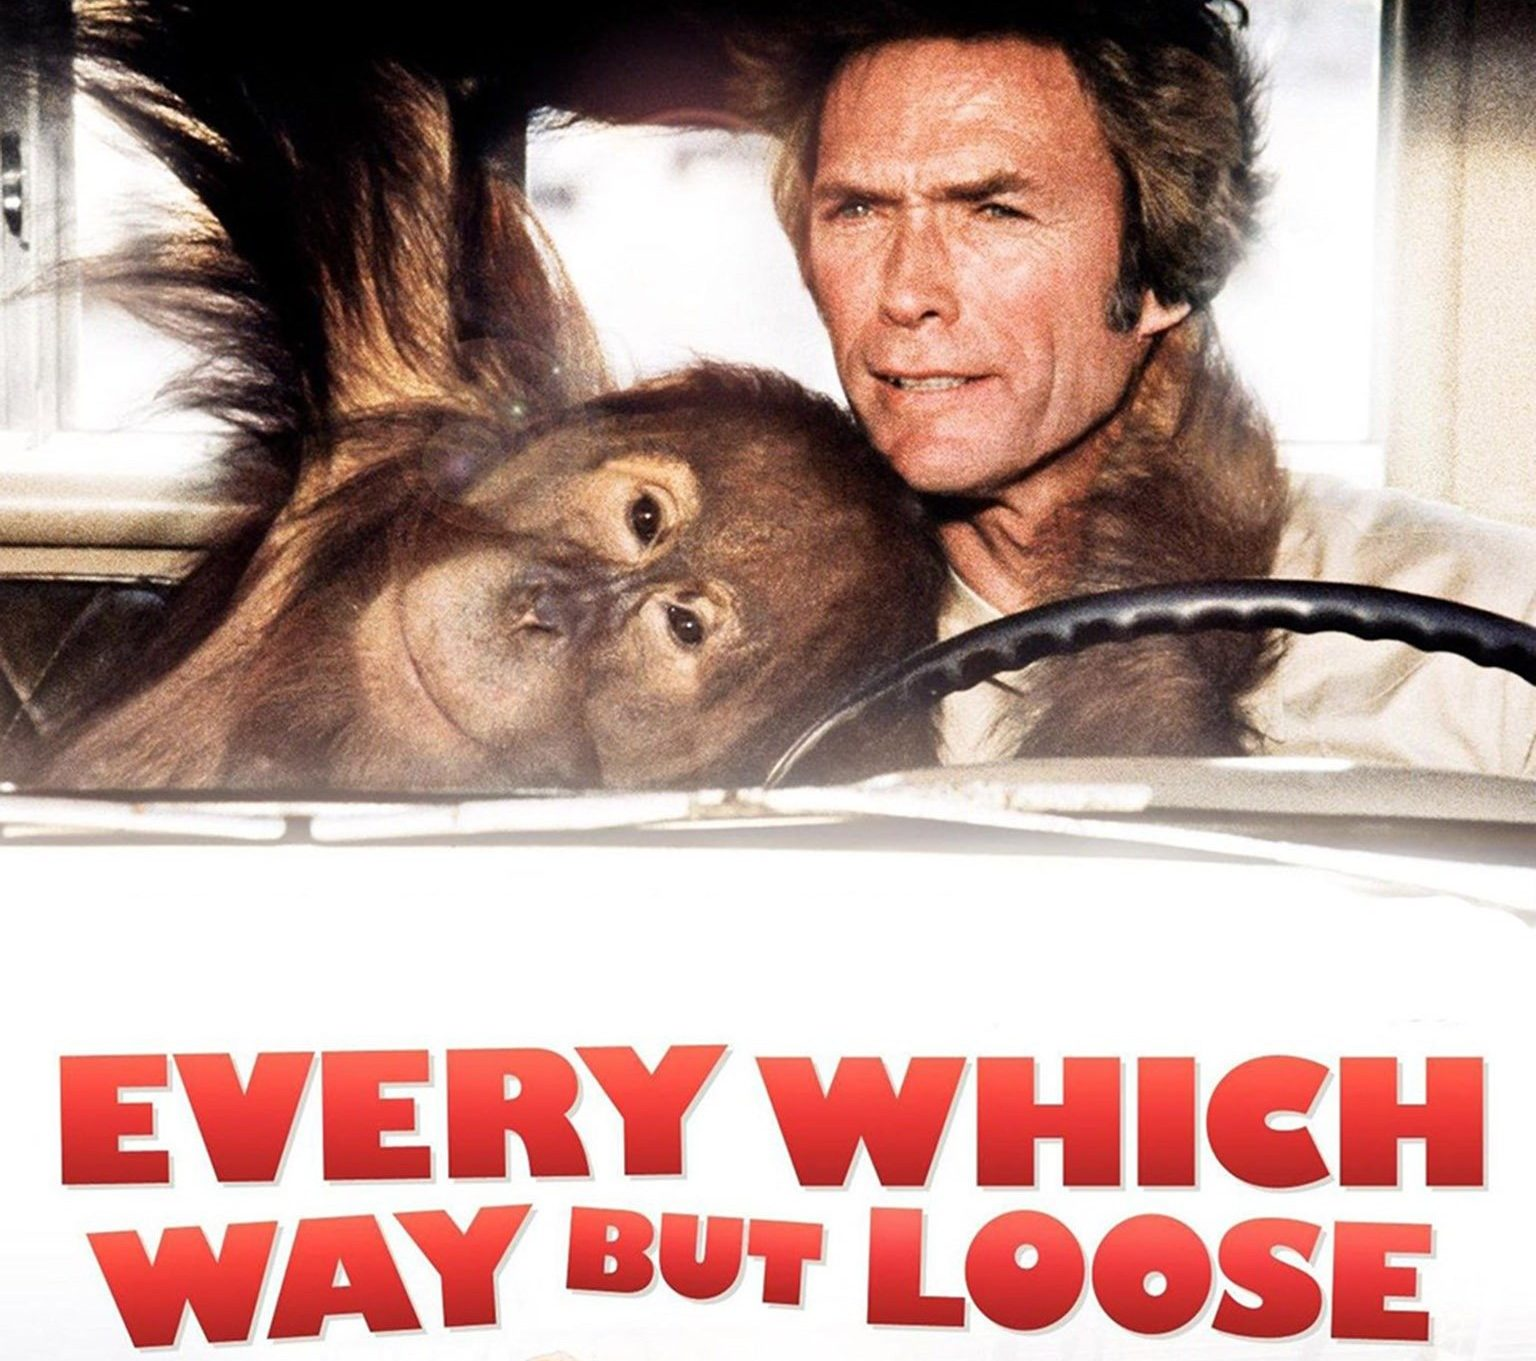 p2333 p v10 aa e1624963242667 20 Things You Probably Didn't Know About Clint Eastwood's 1982 Film Firefox